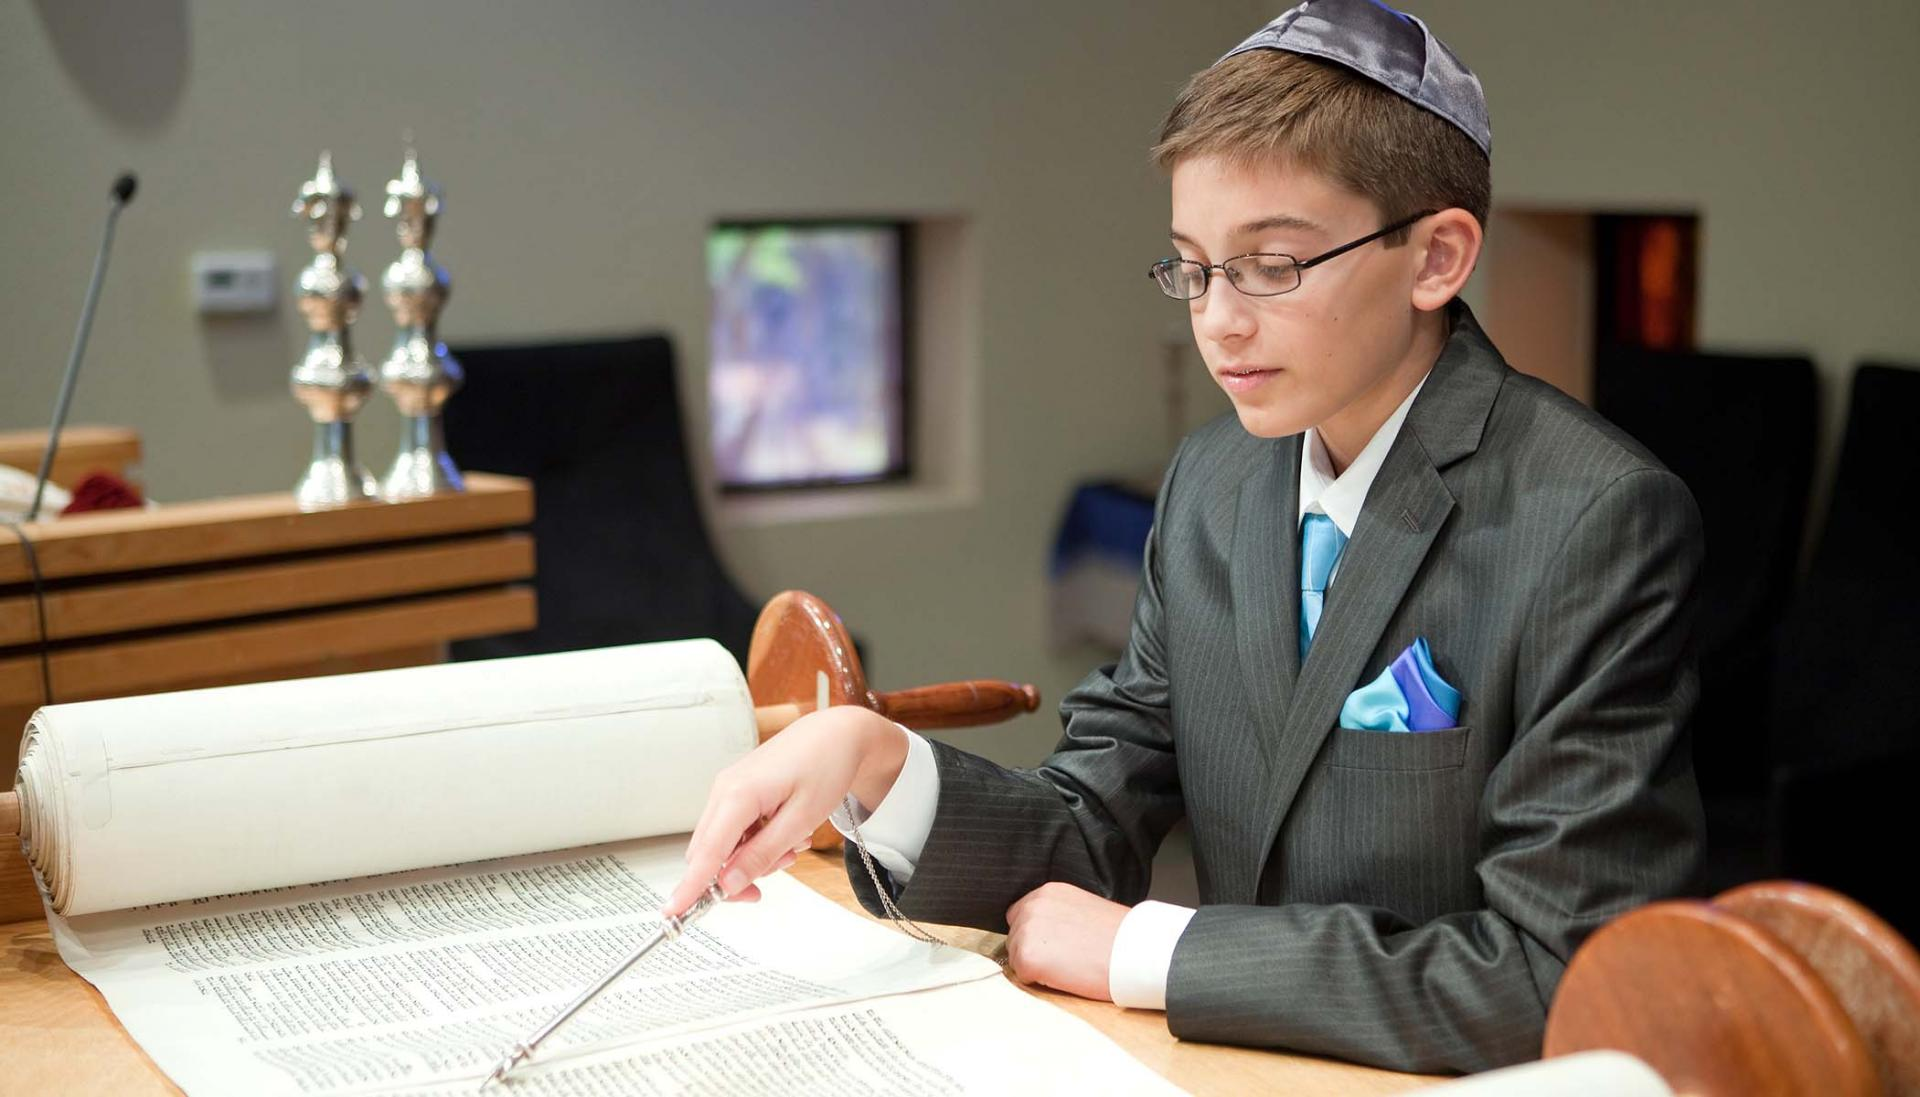 Coppell TX Bar Mitzvah Photography